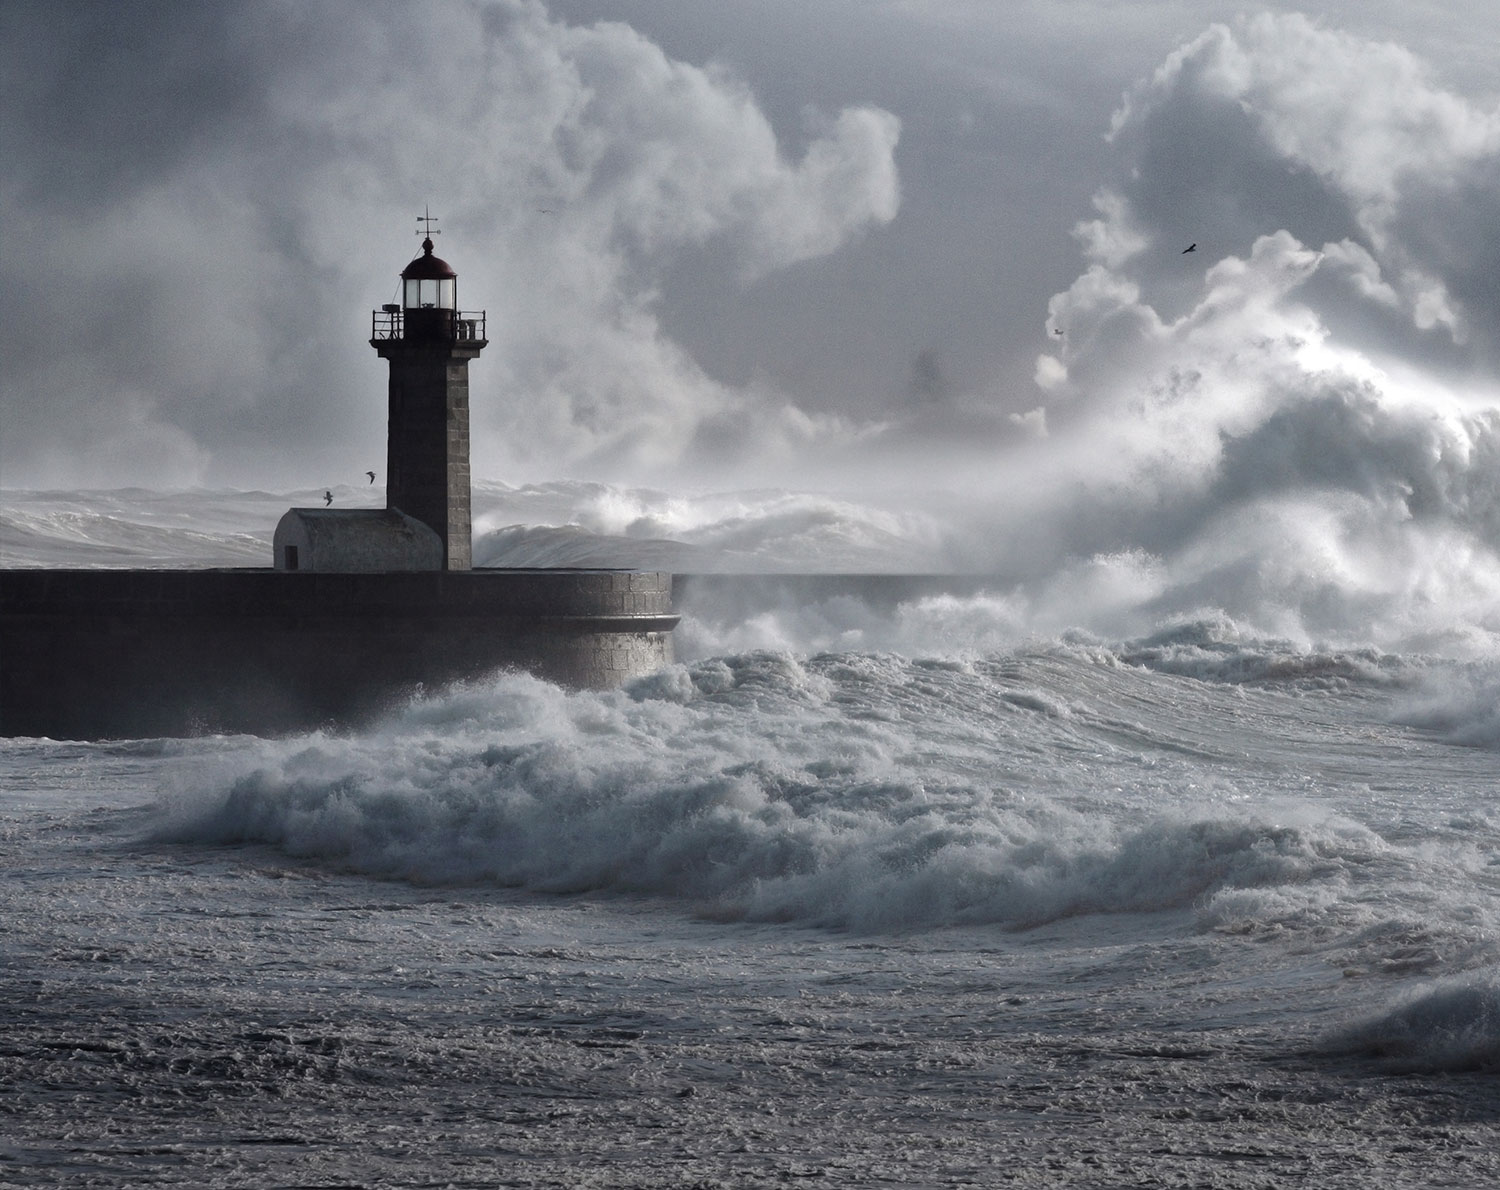 Grey scale light house next to ocean with crashing waves - RationalFX Security and regulations